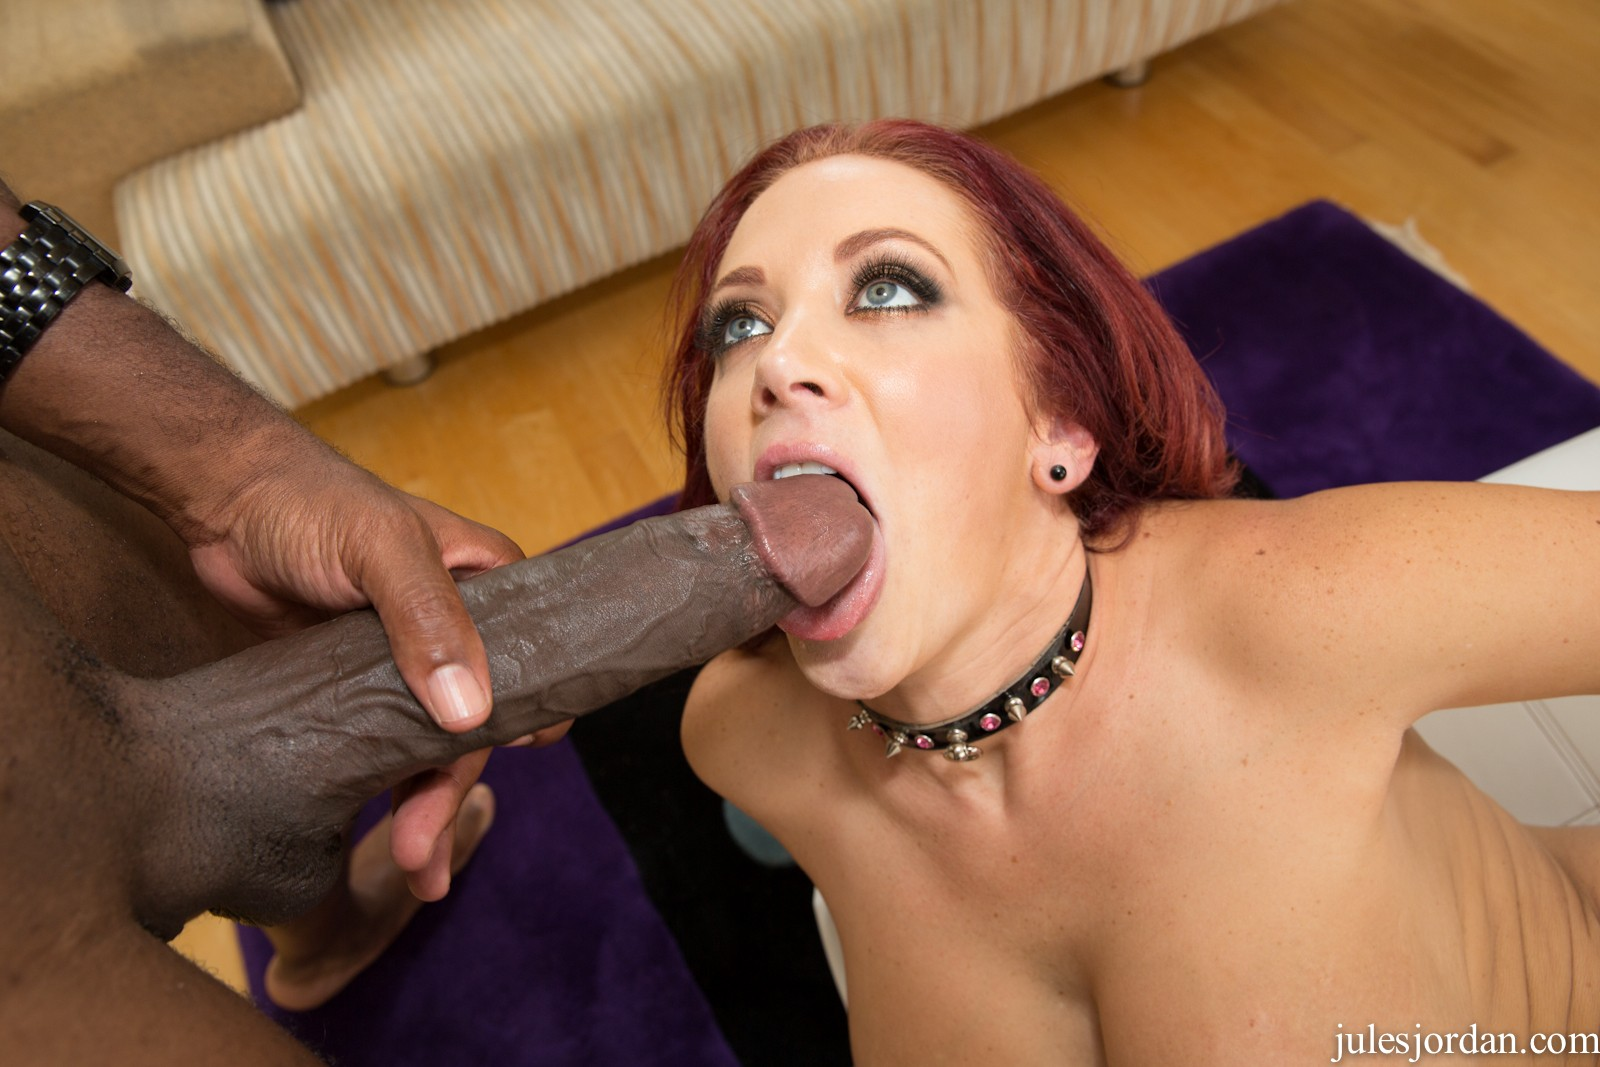 18 inches monster bbc up her ass 10